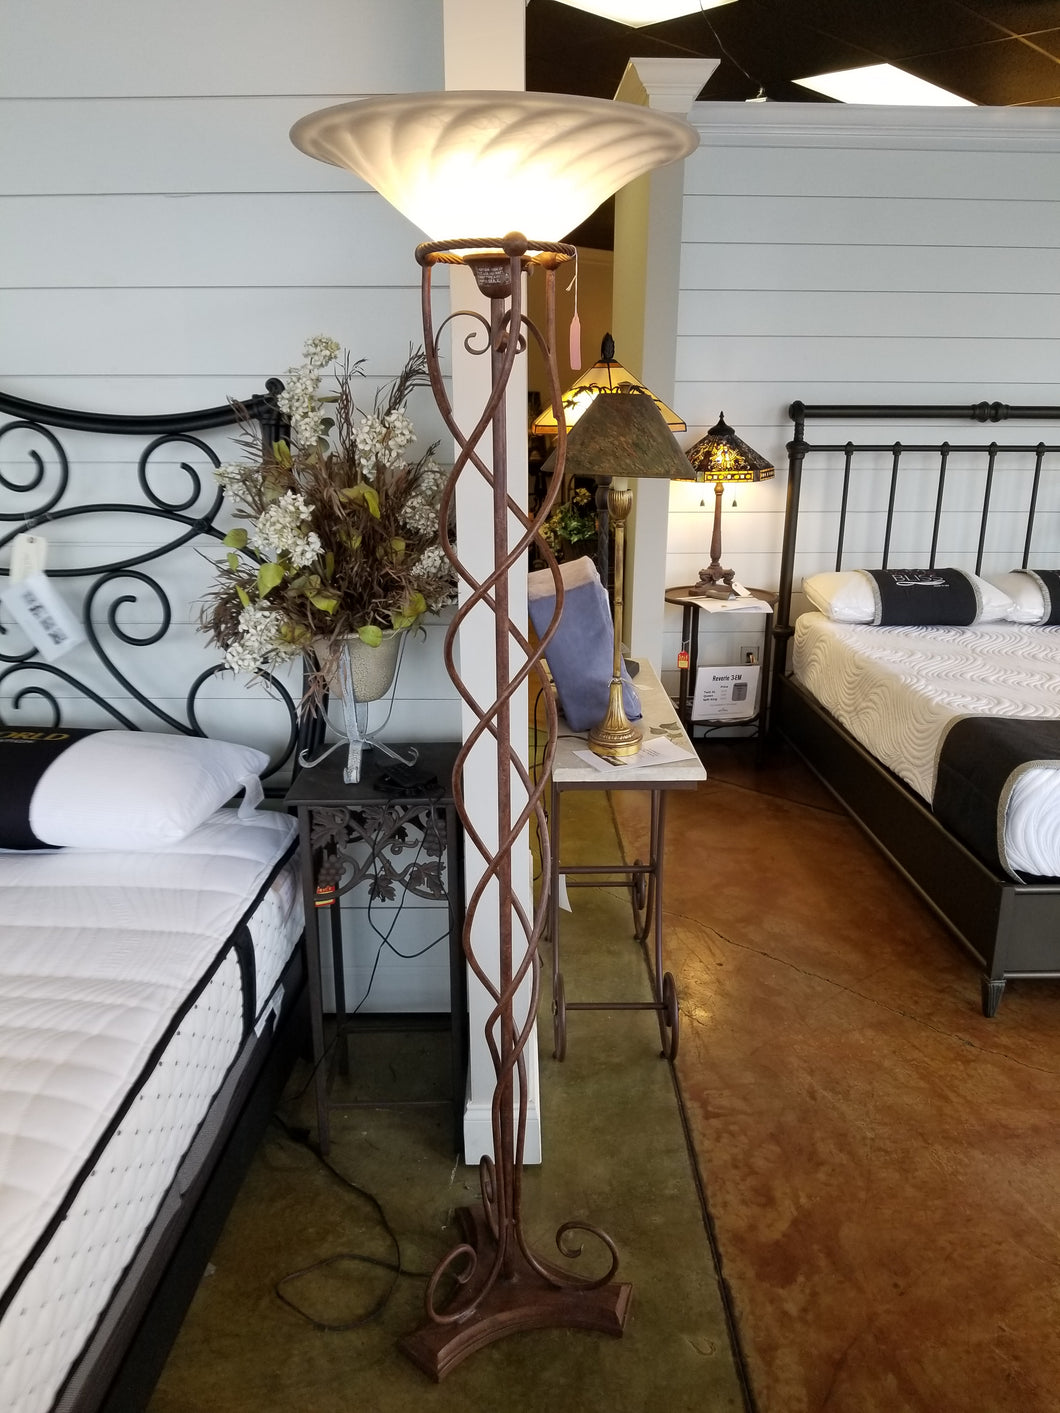 Torchiere floor lamp QG9131ZG - Ensley Fairfield Mattress Co.